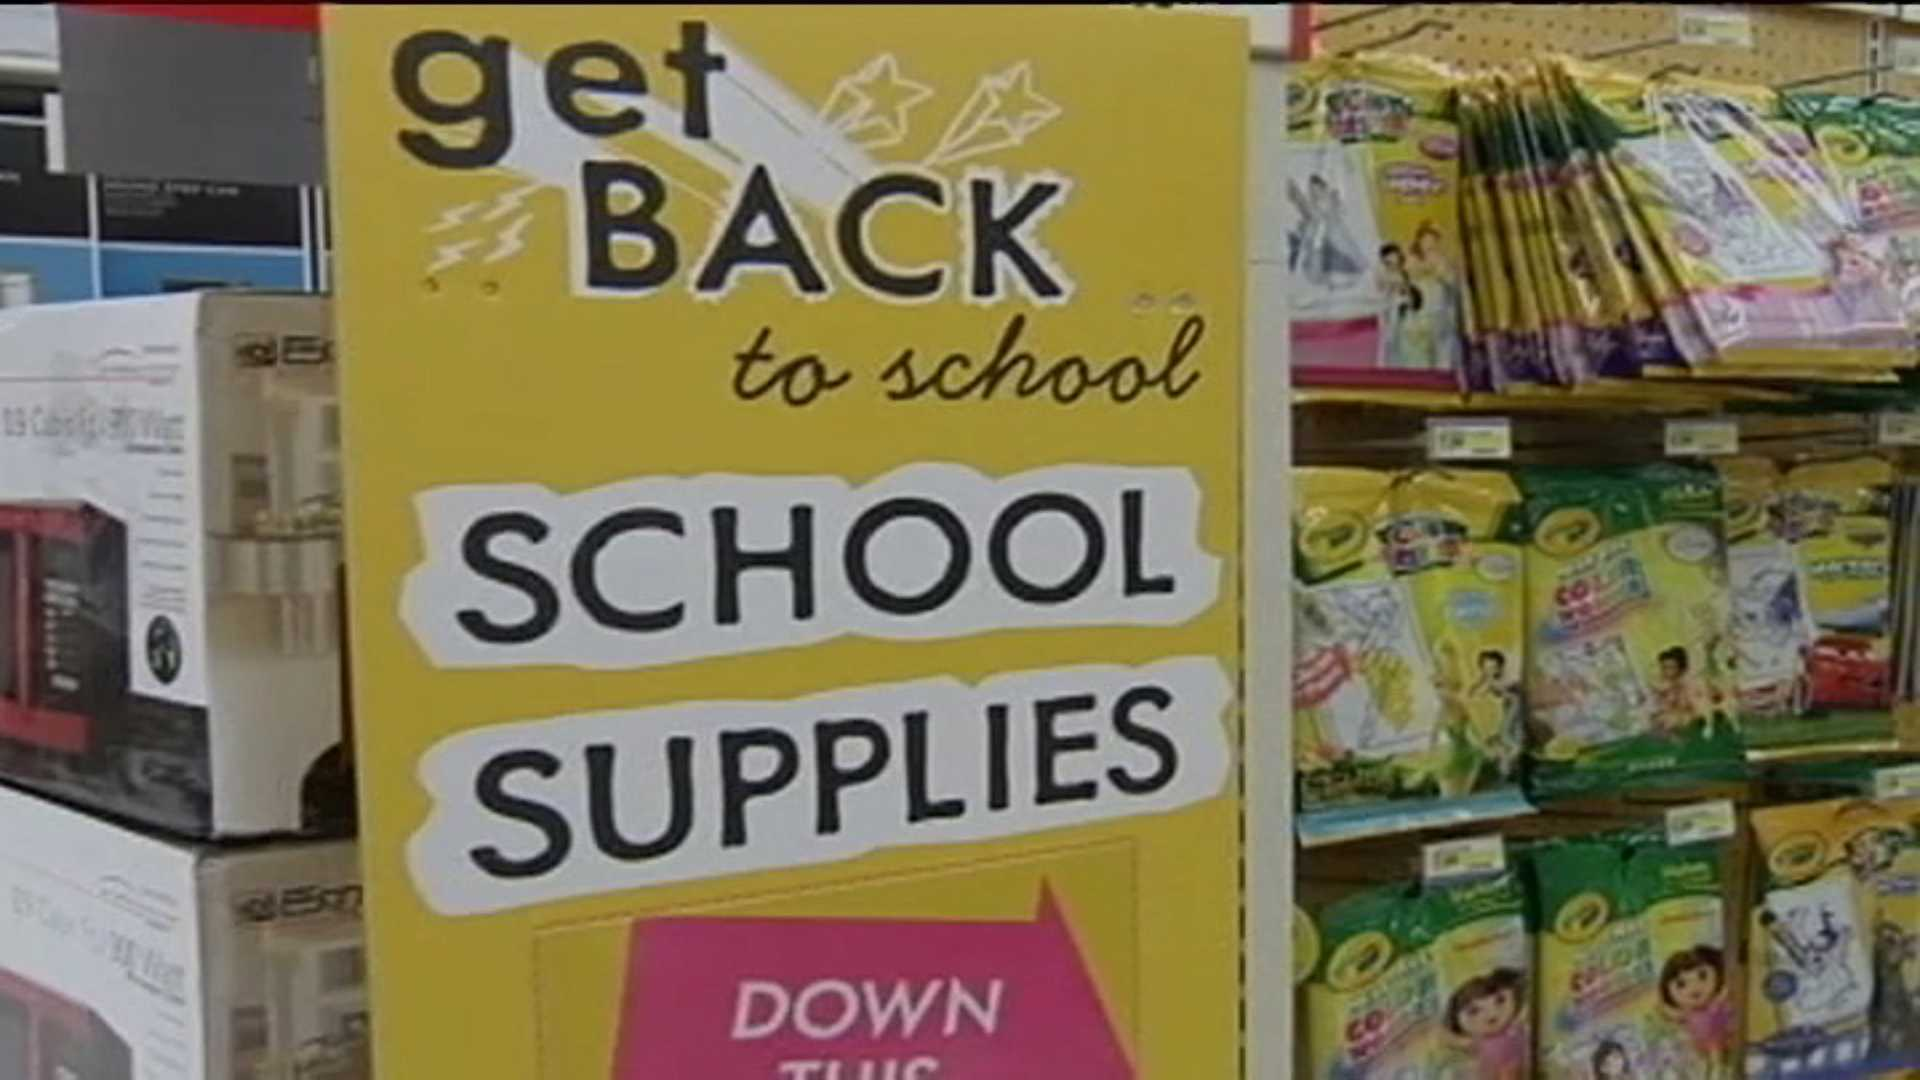 Back-to-school supplies